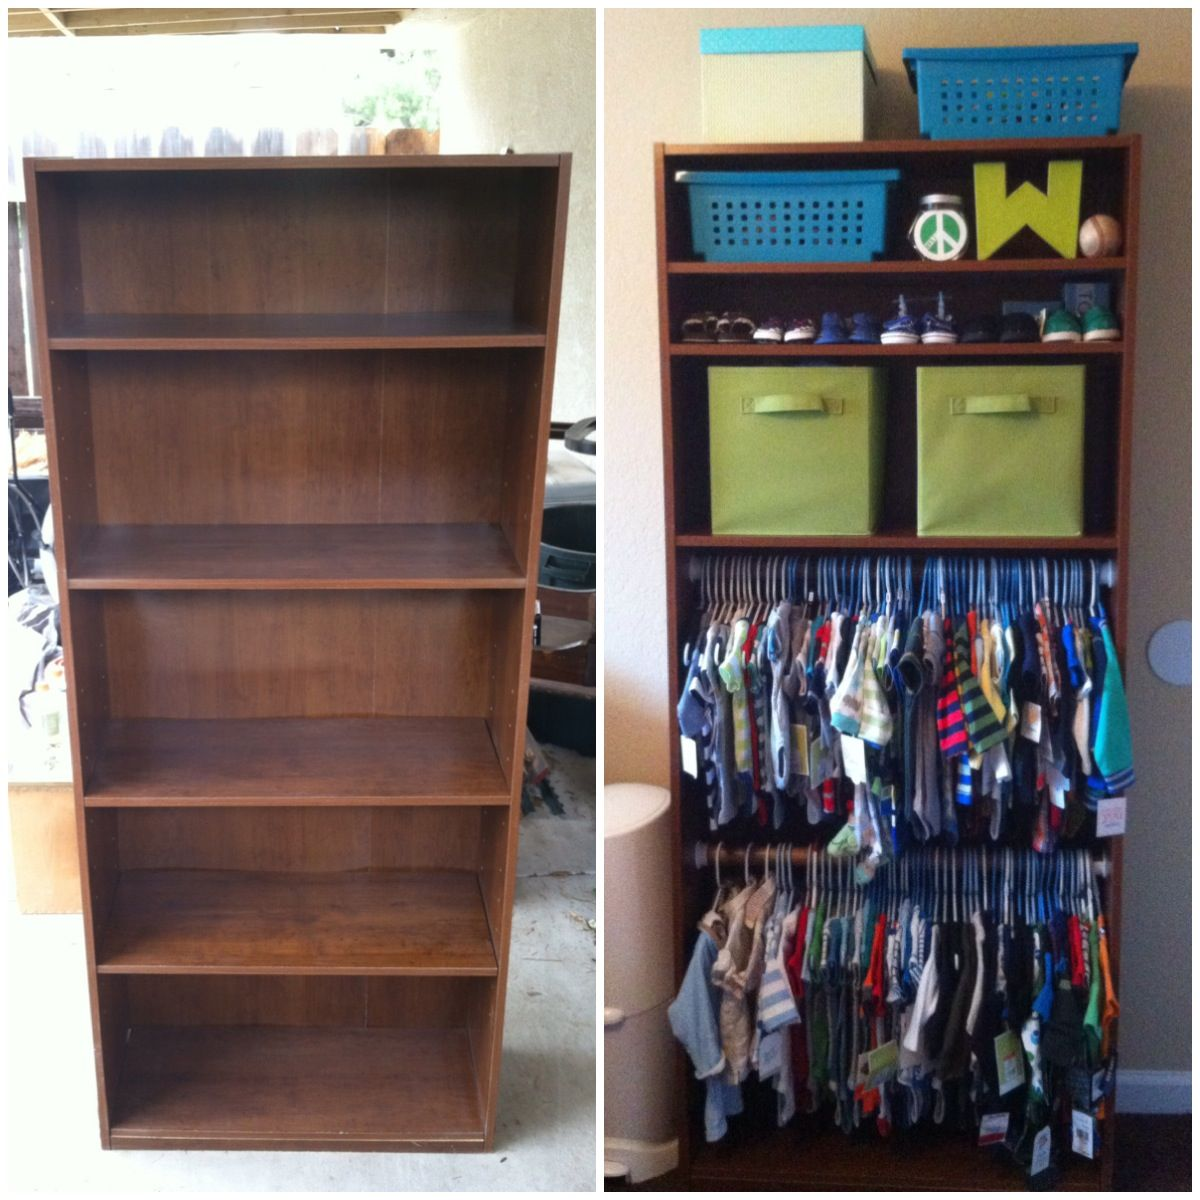 Diy bedroom clothing storage ideas - 23 Money Saving Ways To Repurpose And Reuse Old Bookcases